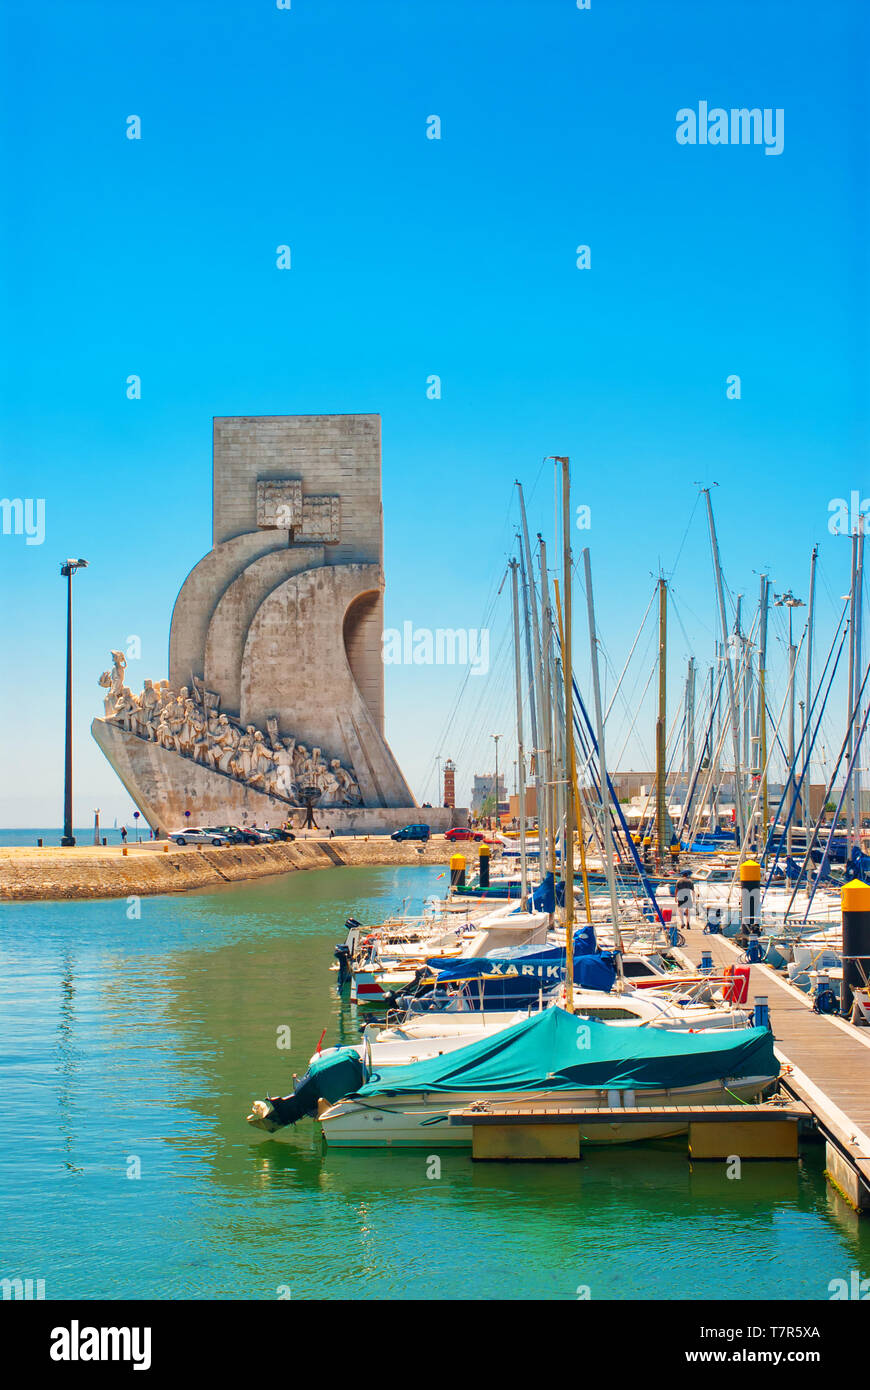 The harbour in Lisbon,Portugal with the Padrão dos Descobrimentos (Monument of Discoveries), in the background. - Stock Image